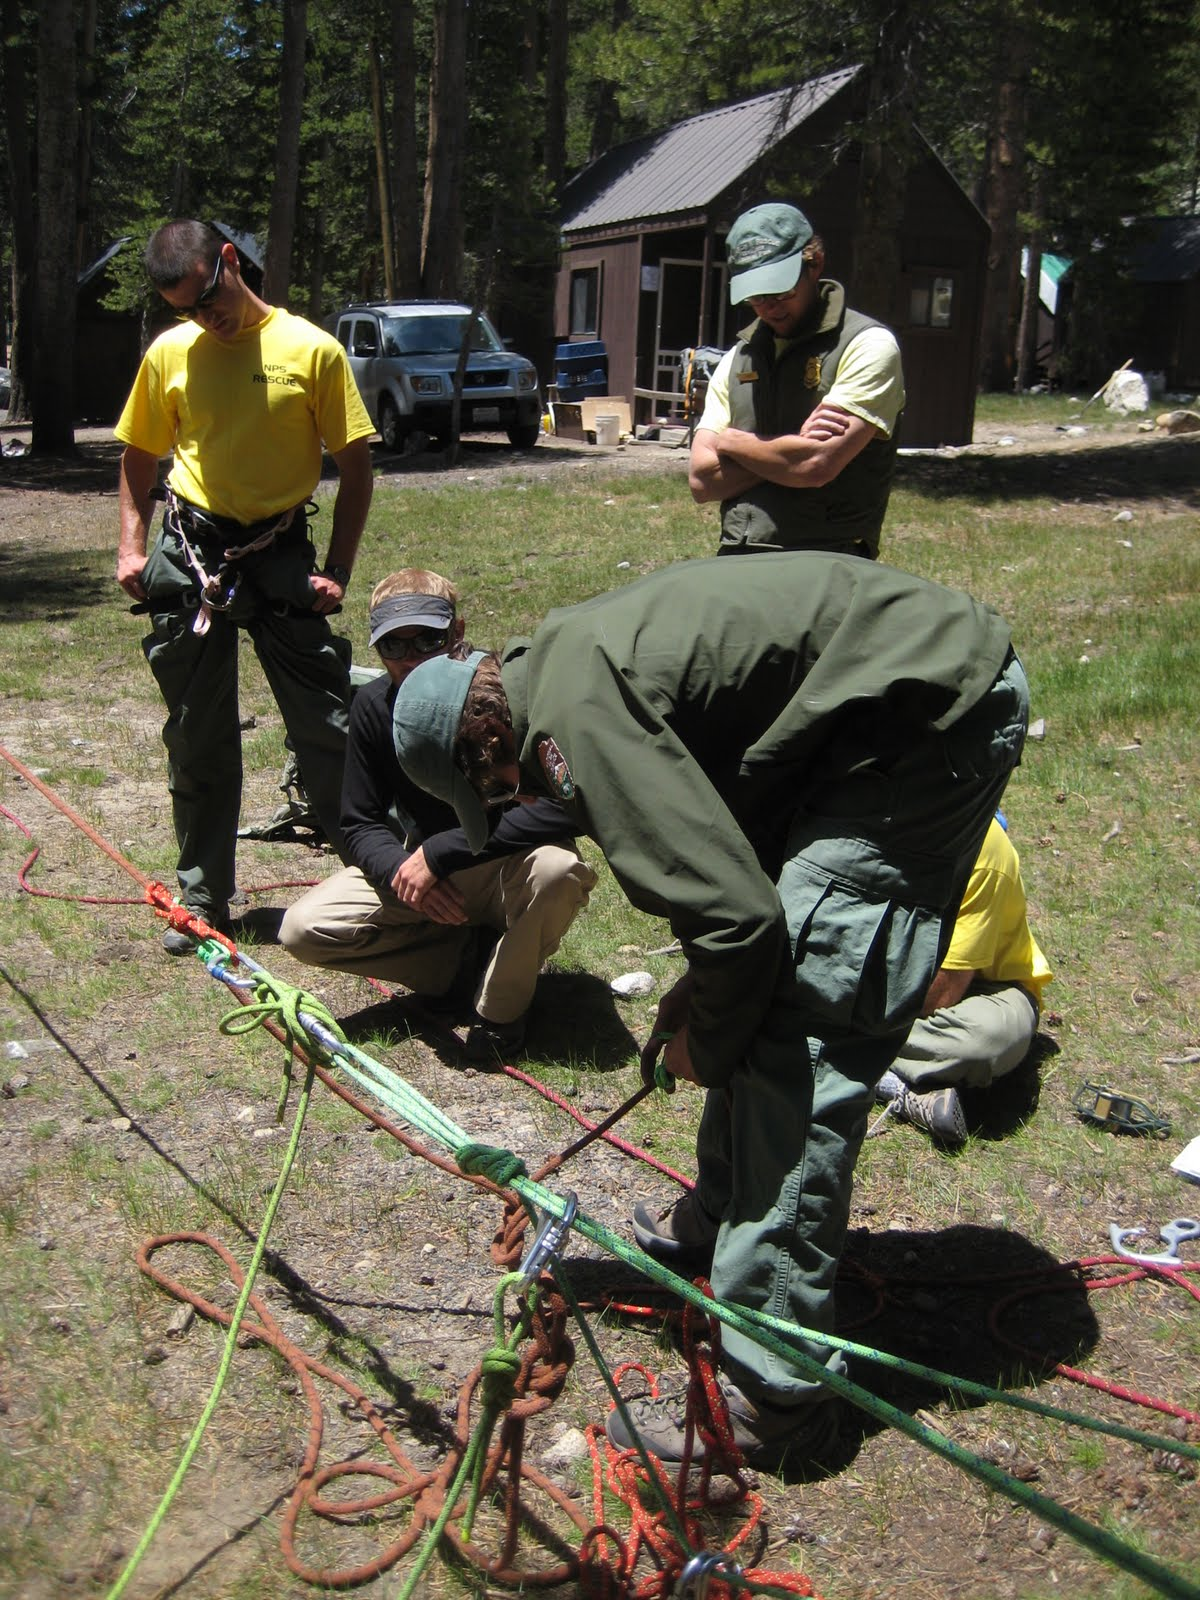 Mechanical Advantage Haul Systems http://stuffdaviddoes.blogspot.com/2010/07/yosemite-2010-rope-rescue-training.html